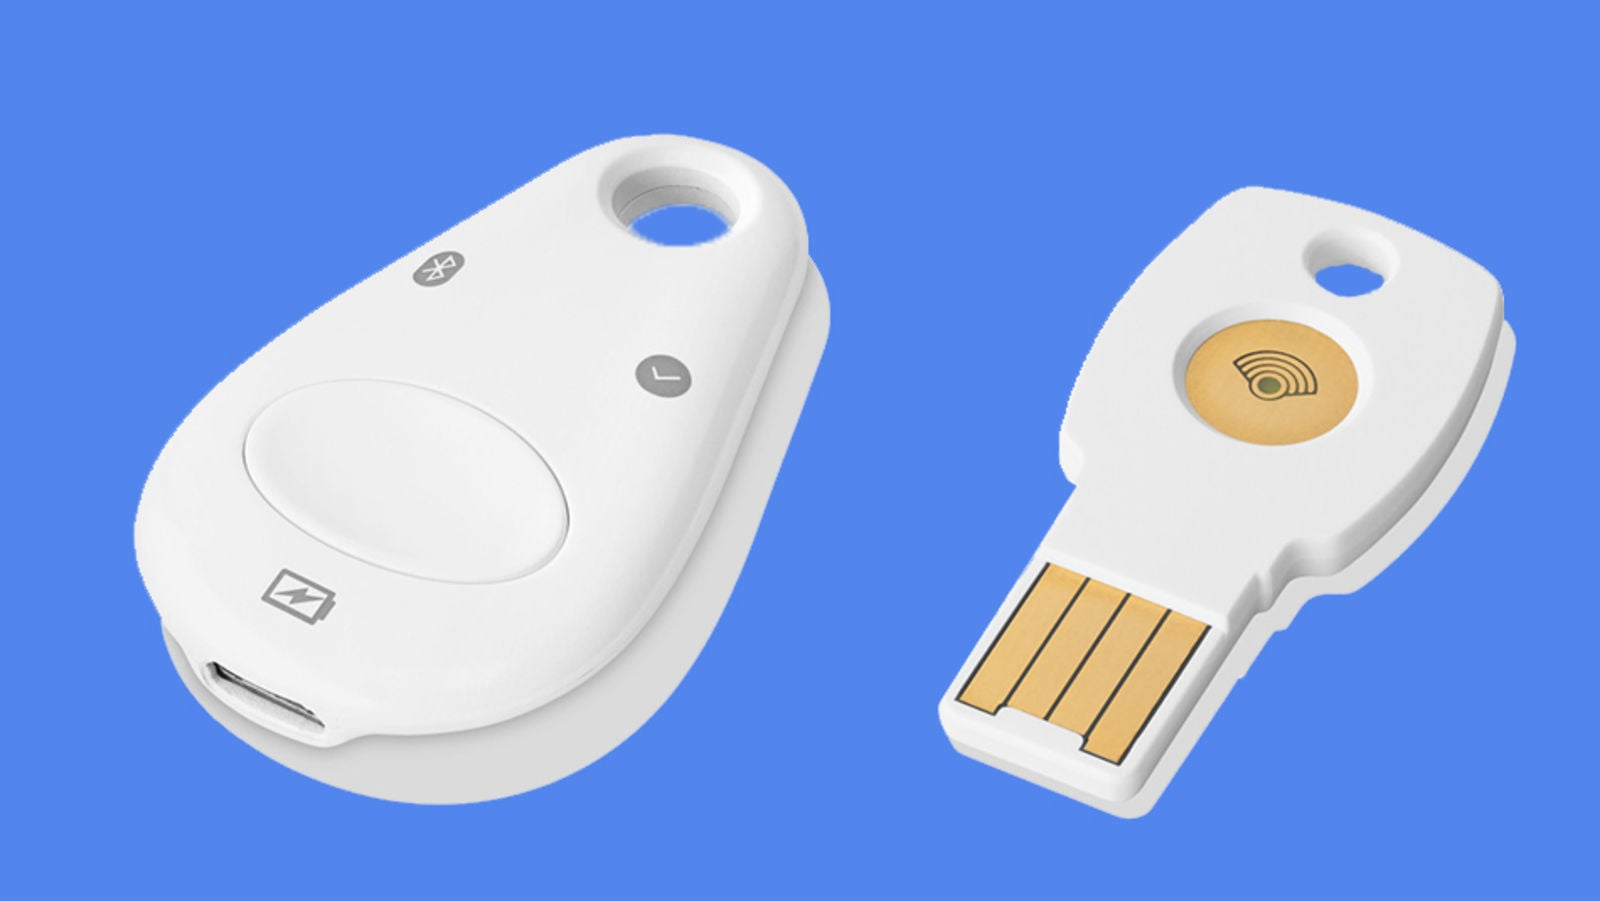 Google Recalls Physical Security Keys After Discovery Of Bluetooth Vulnerability